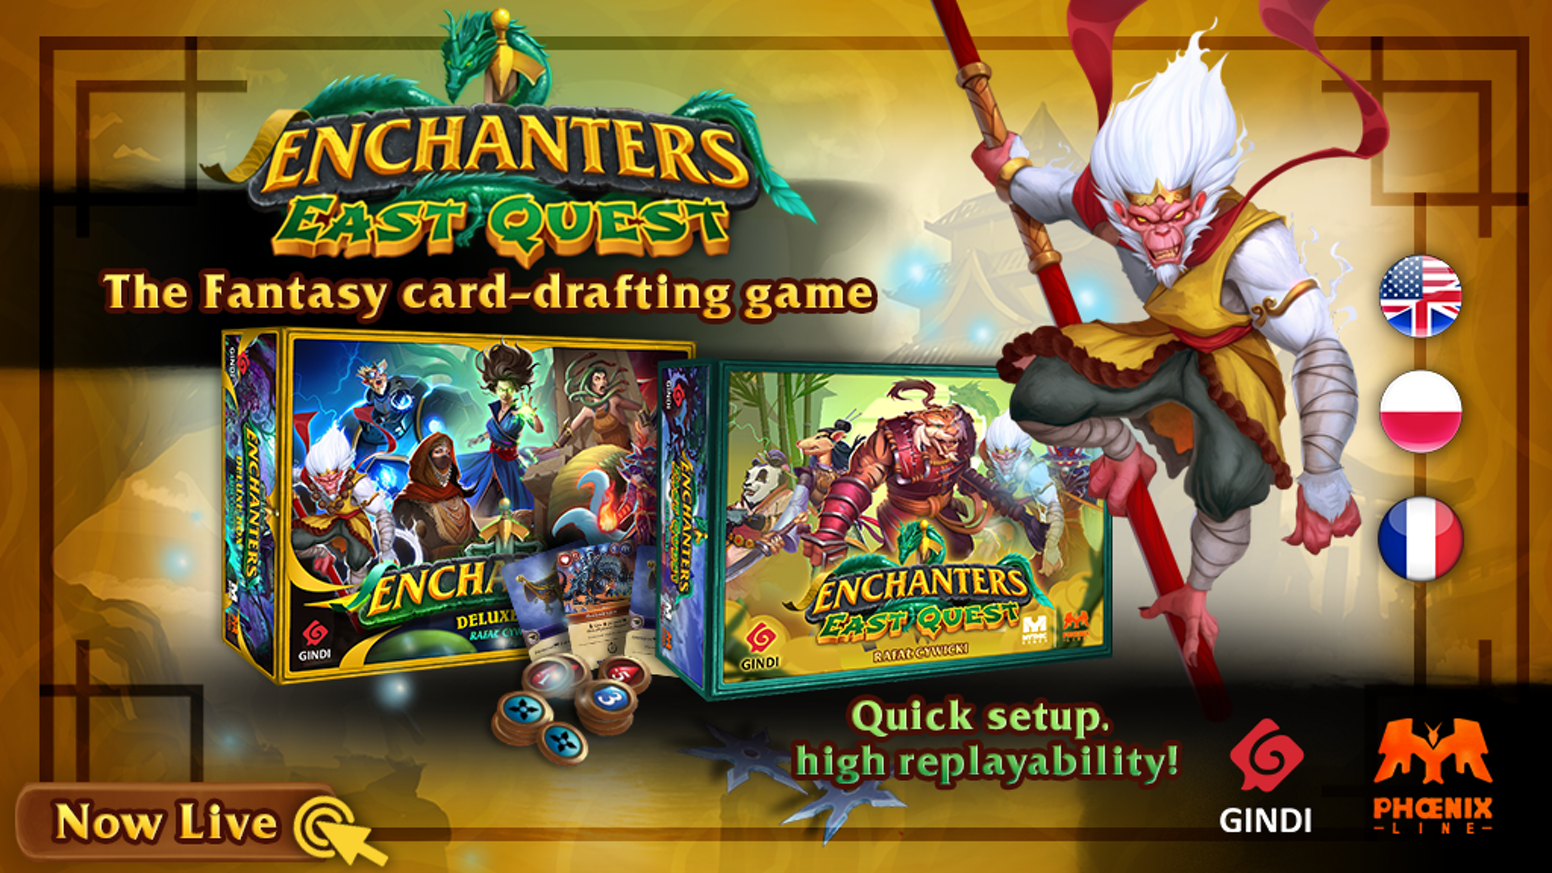 Play an Enchanter and protect your village from monsters in this 1-4 player card-drafting game by forging infinite combos of Artifacts!